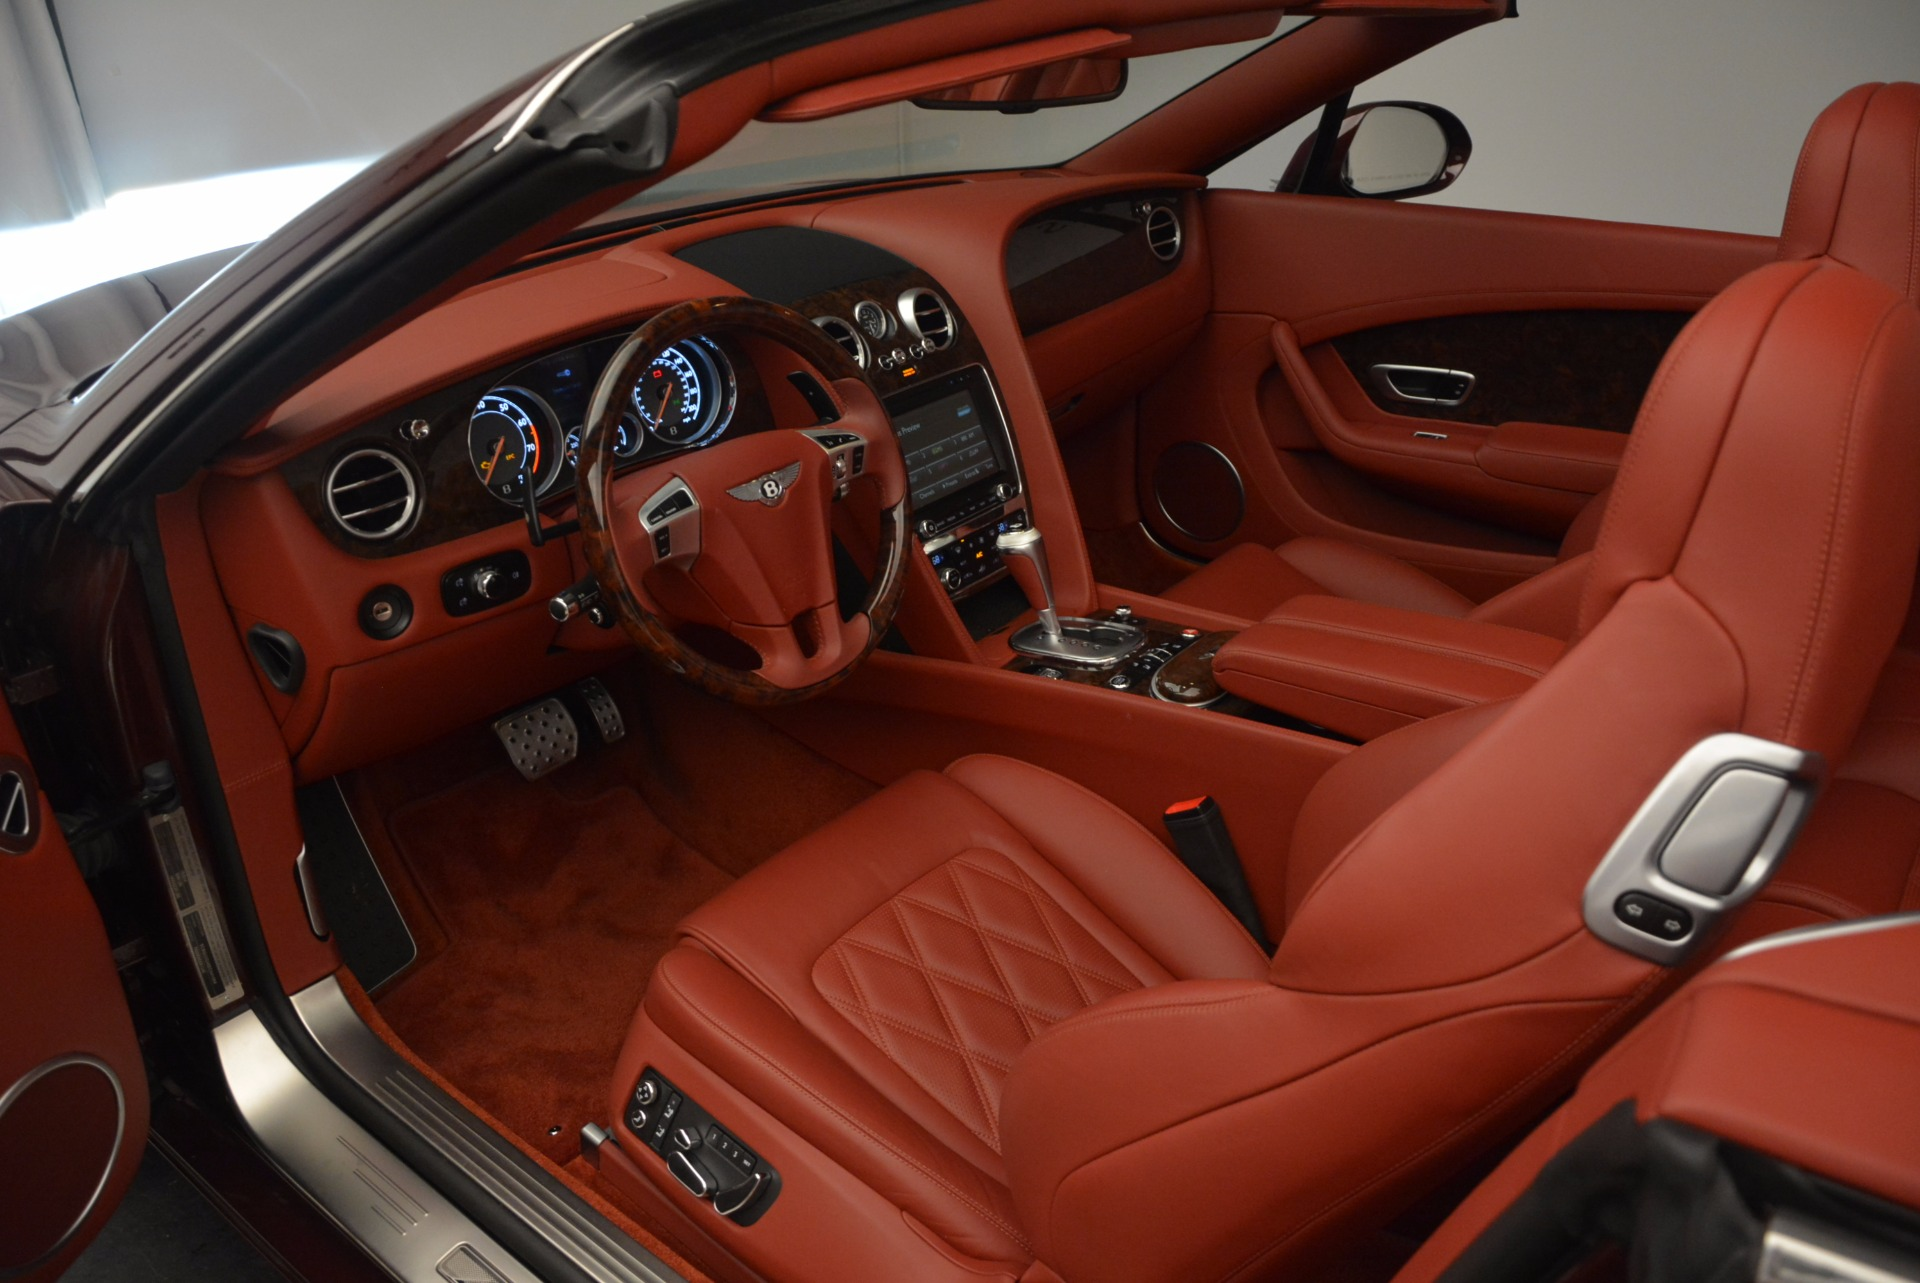 Used 2014 Bentley Continental GT W12 For Sale In Greenwich, CT. Alfa Romeo of Greenwich, 7276 1516_p30